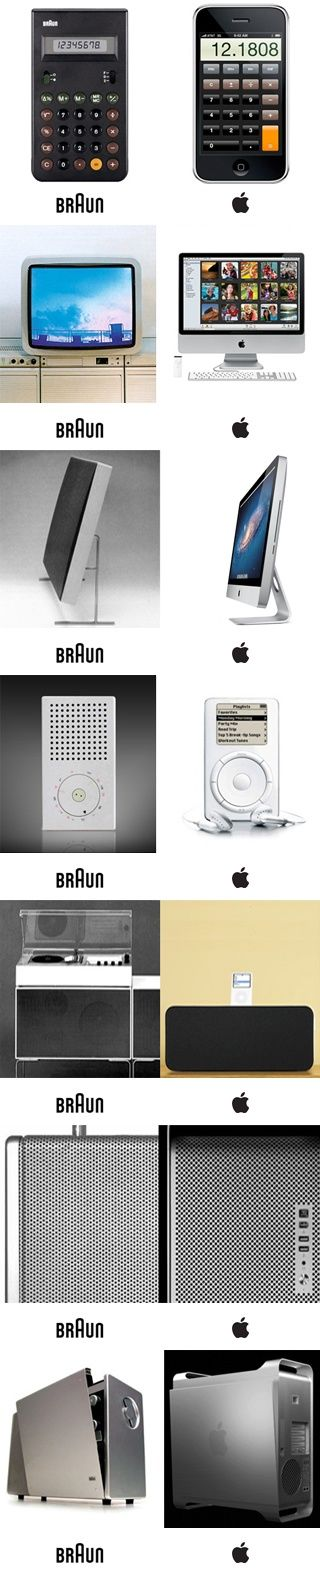 1960s braun products hold the secrets to apple 39 s future focus on design and technology. Black Bedroom Furniture Sets. Home Design Ideas